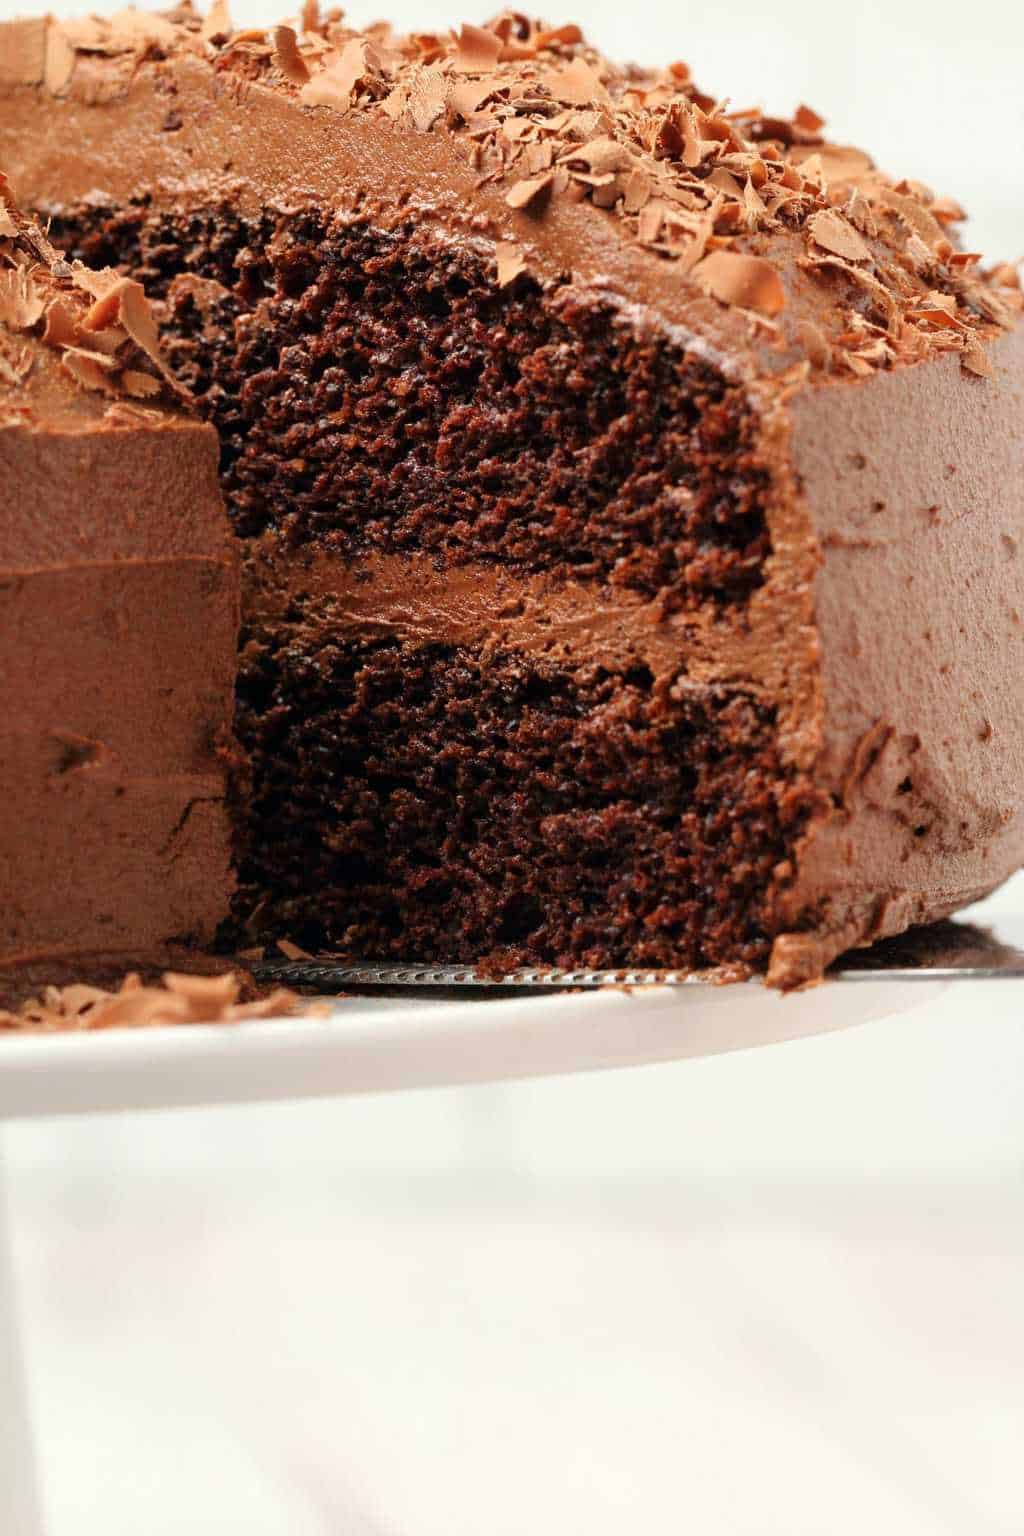 Chocolate cake with one slice cut and ready to serve on a white cake stand.